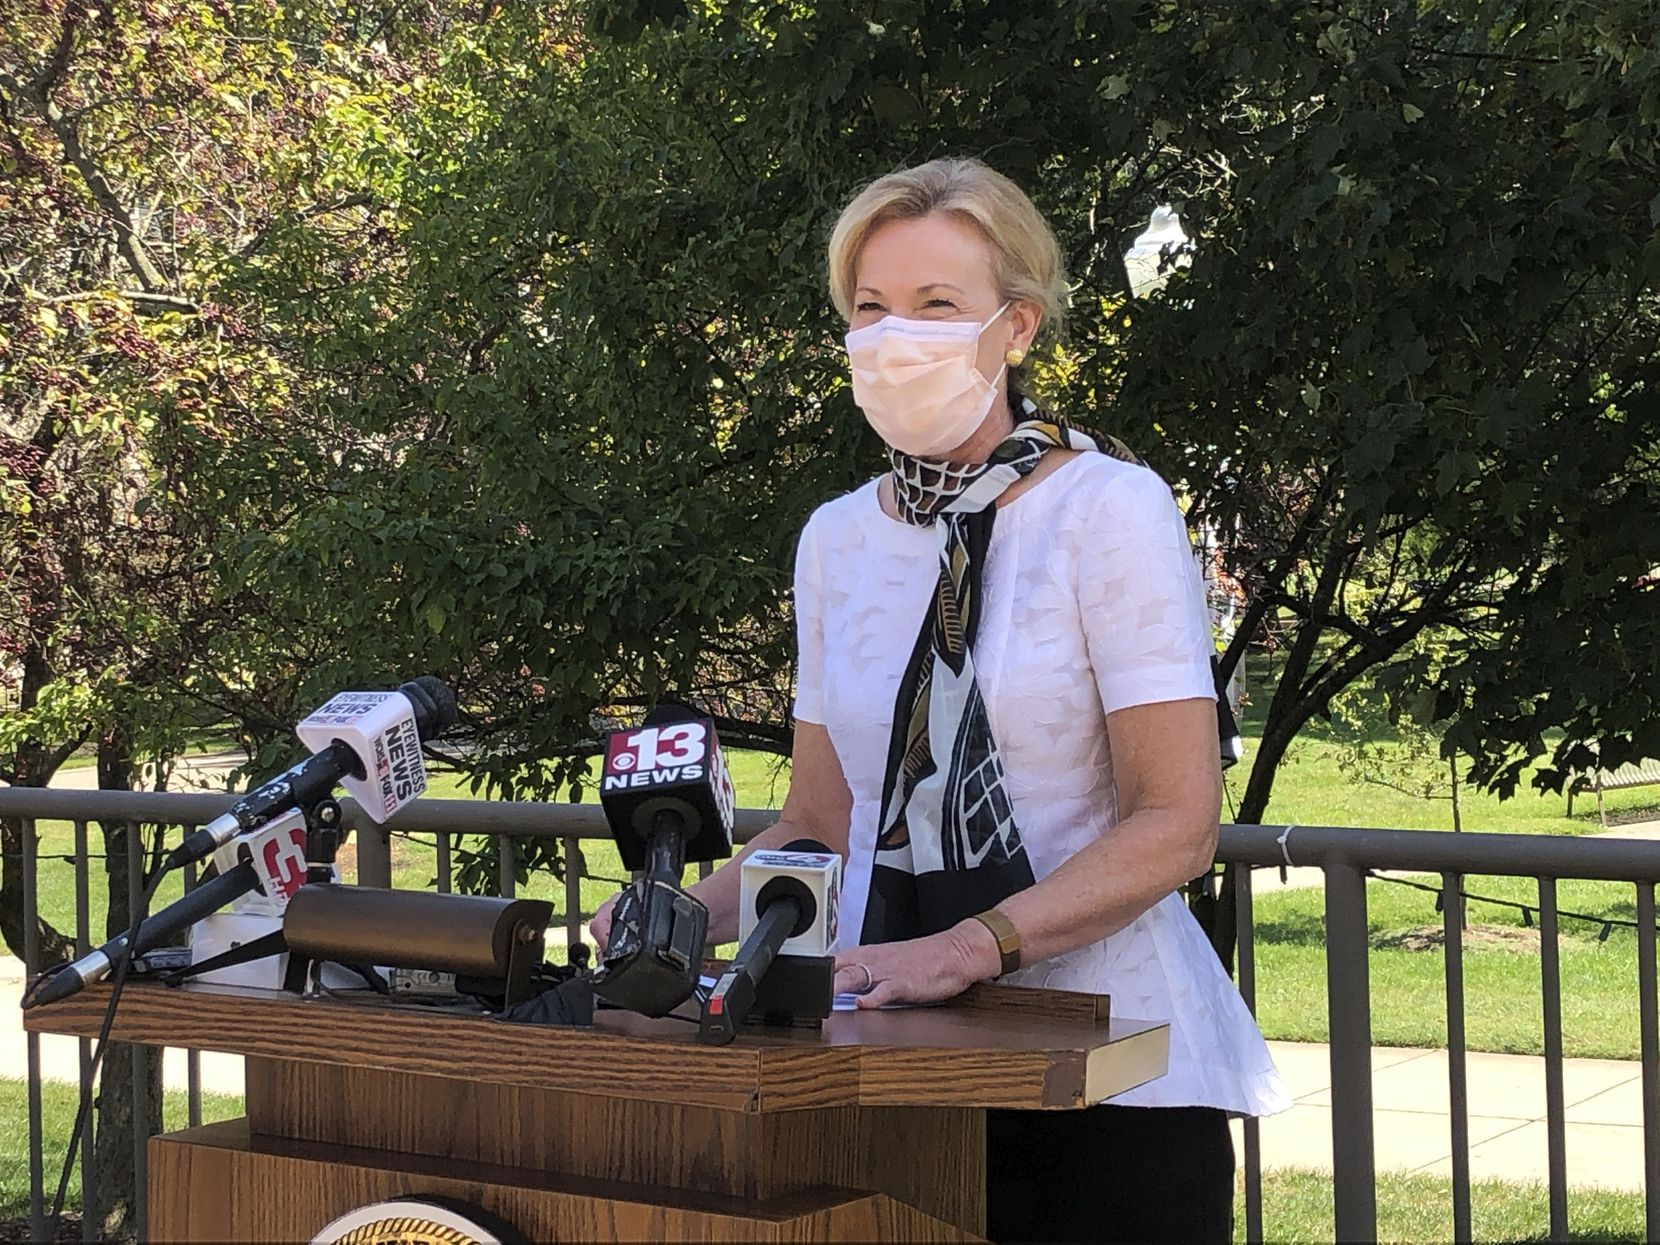 Dr. Deborah Birx, President Donald Trump's top coronavirus adviser, speaks at a news conference at the state Capitol Complex on Wednesday, Aug. 19, 2020, in Charleston, W.Va.